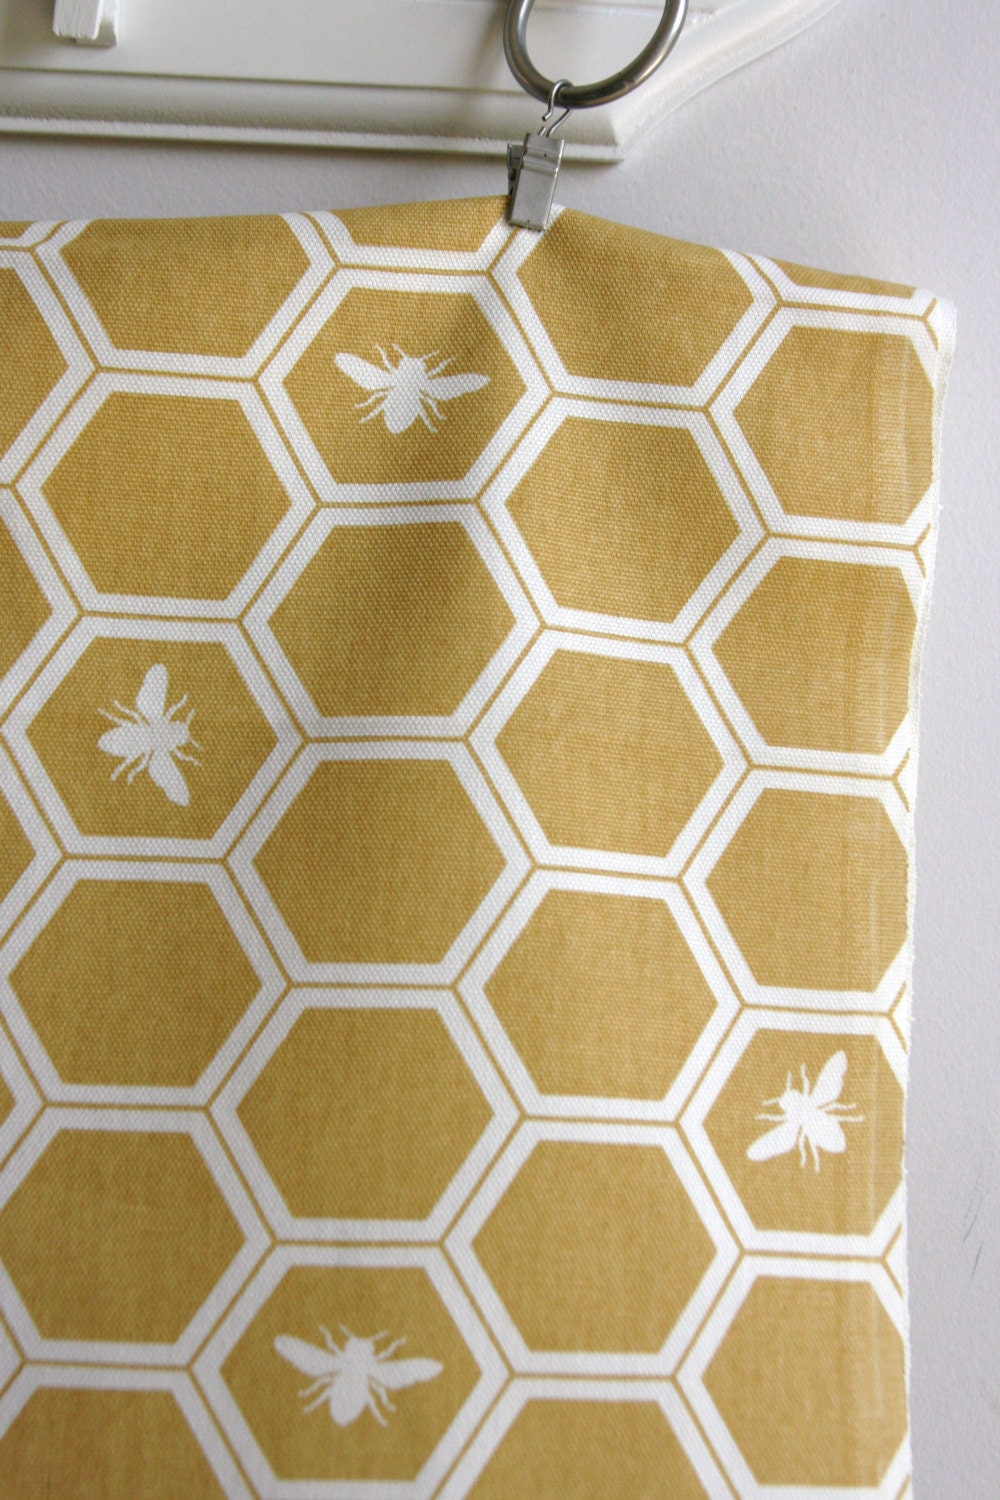 Organic Honeycomb in Sun in Home Decor Canvas - The Grove Collection - ONE  FAT QUARTER  Cut - SewFineFabric